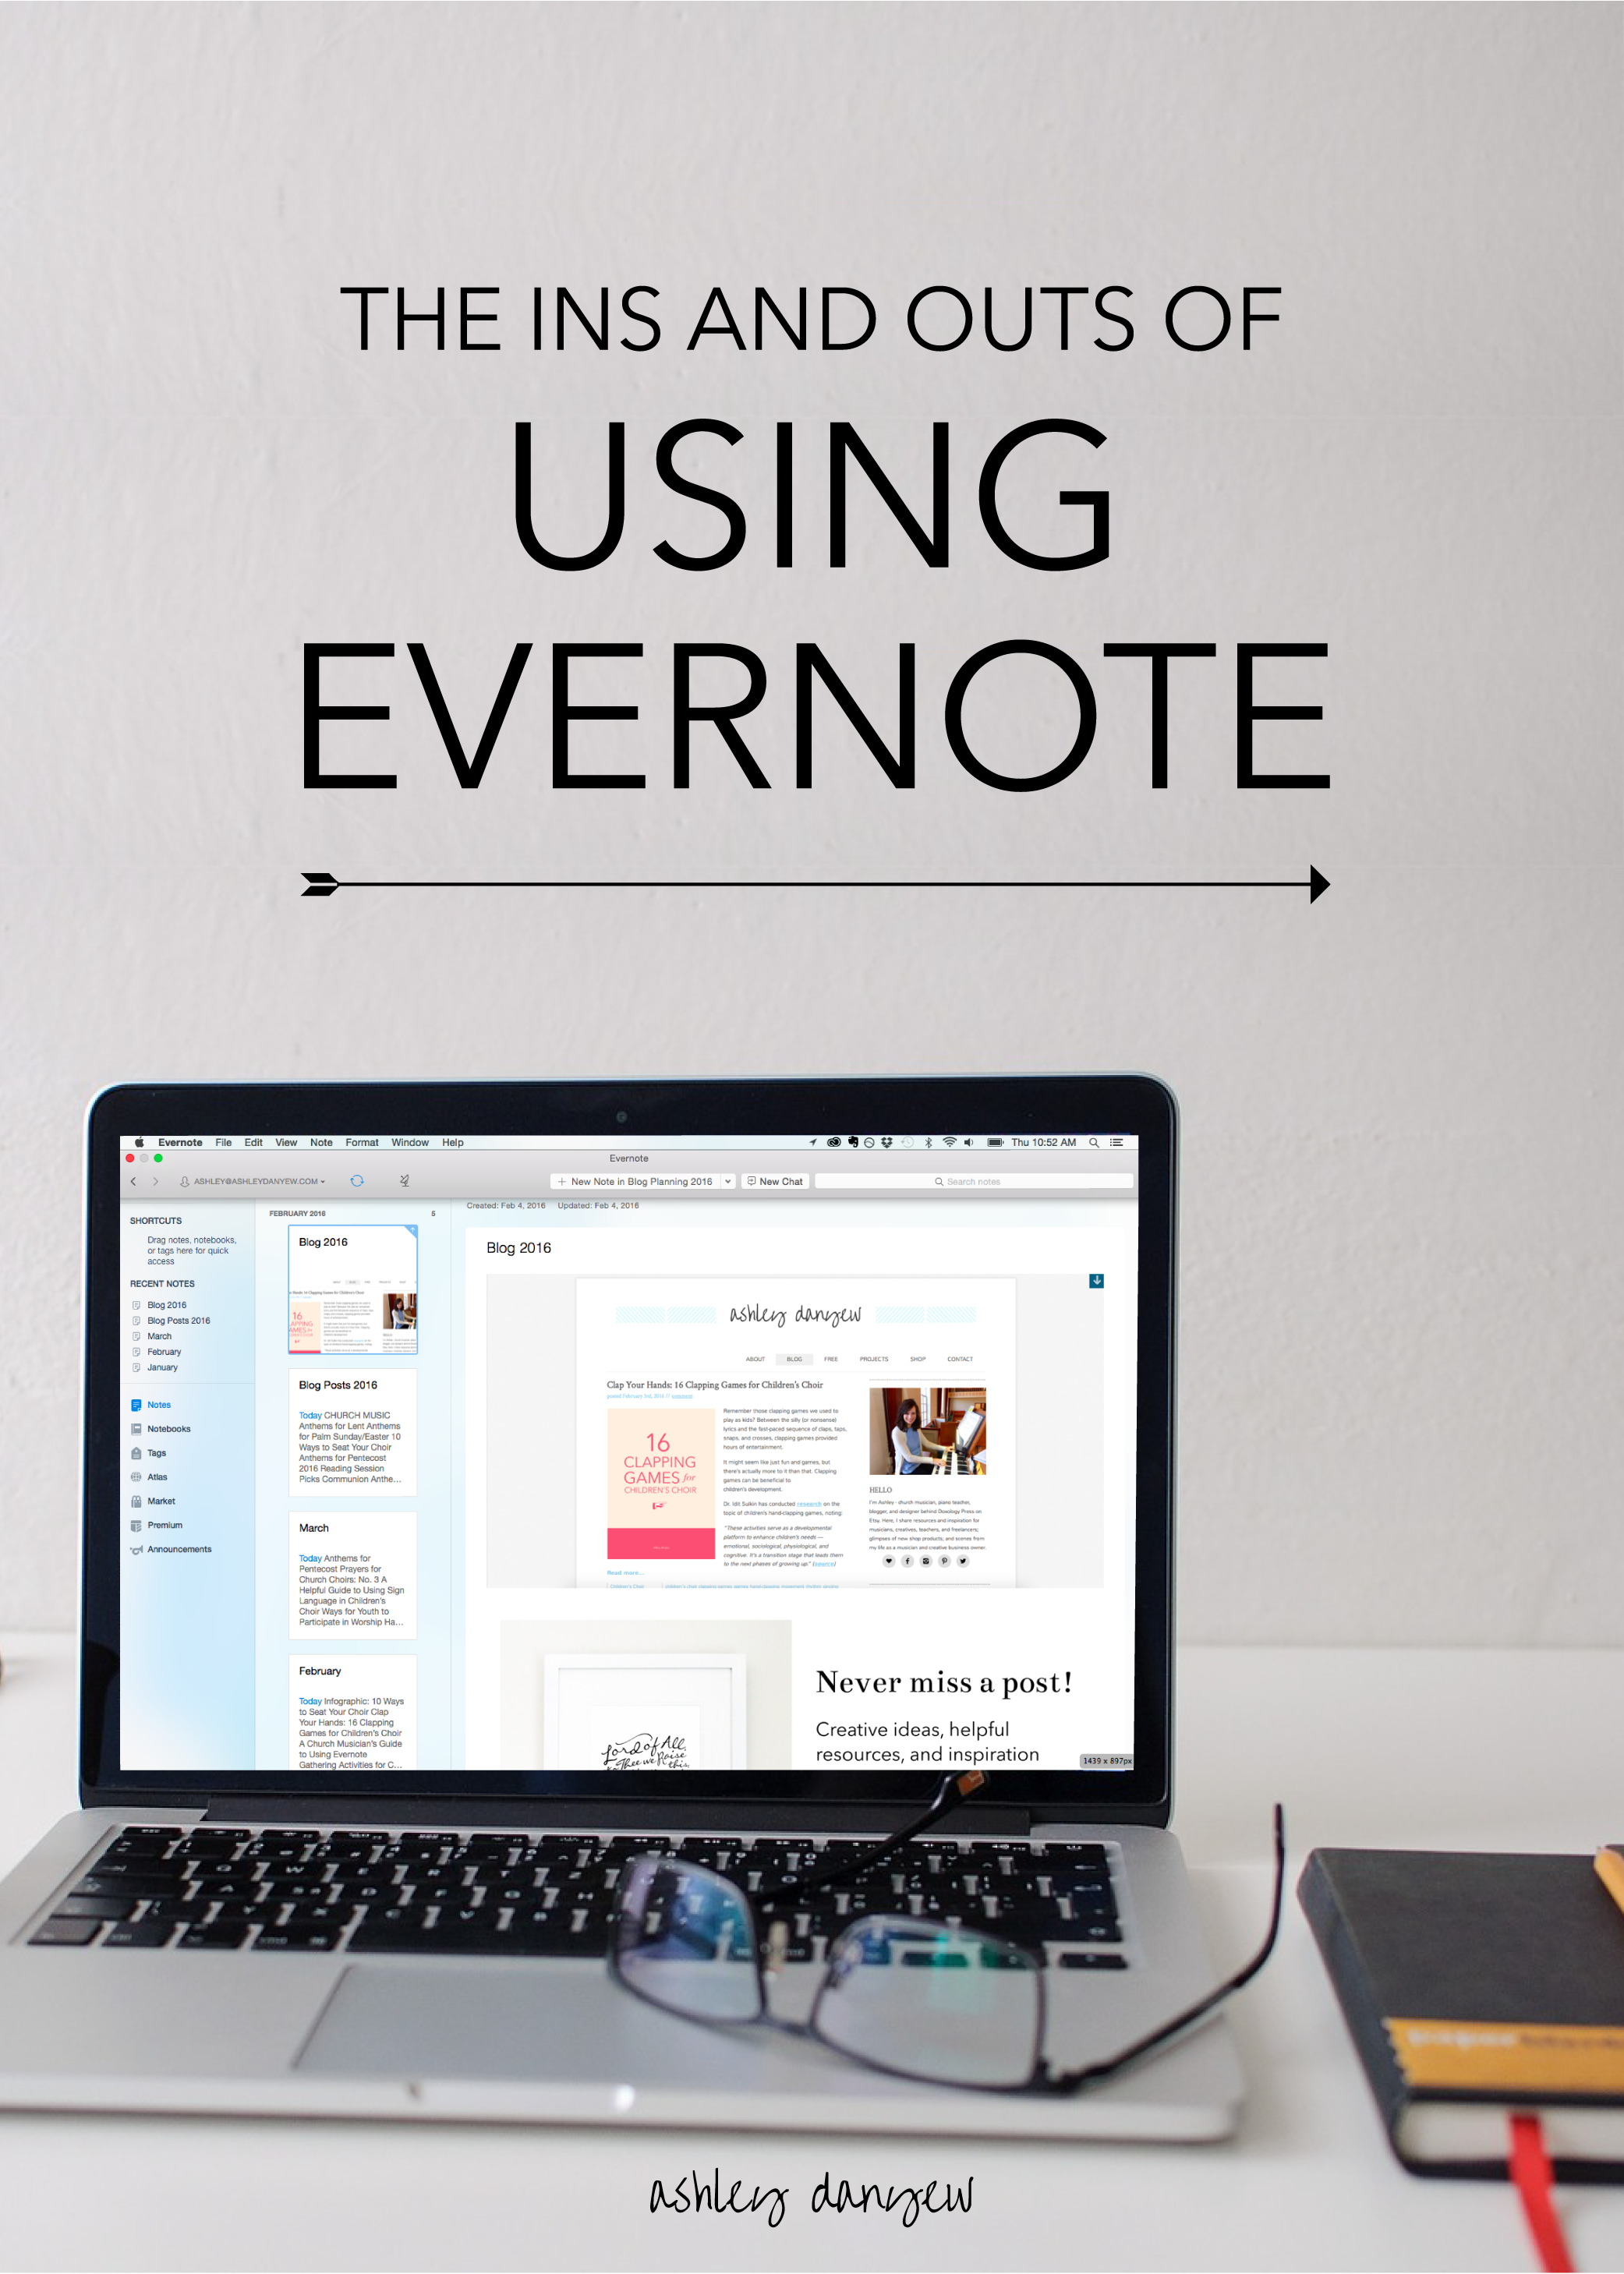 The-Ins-and-Outs-of-Using-Evernote-01.png